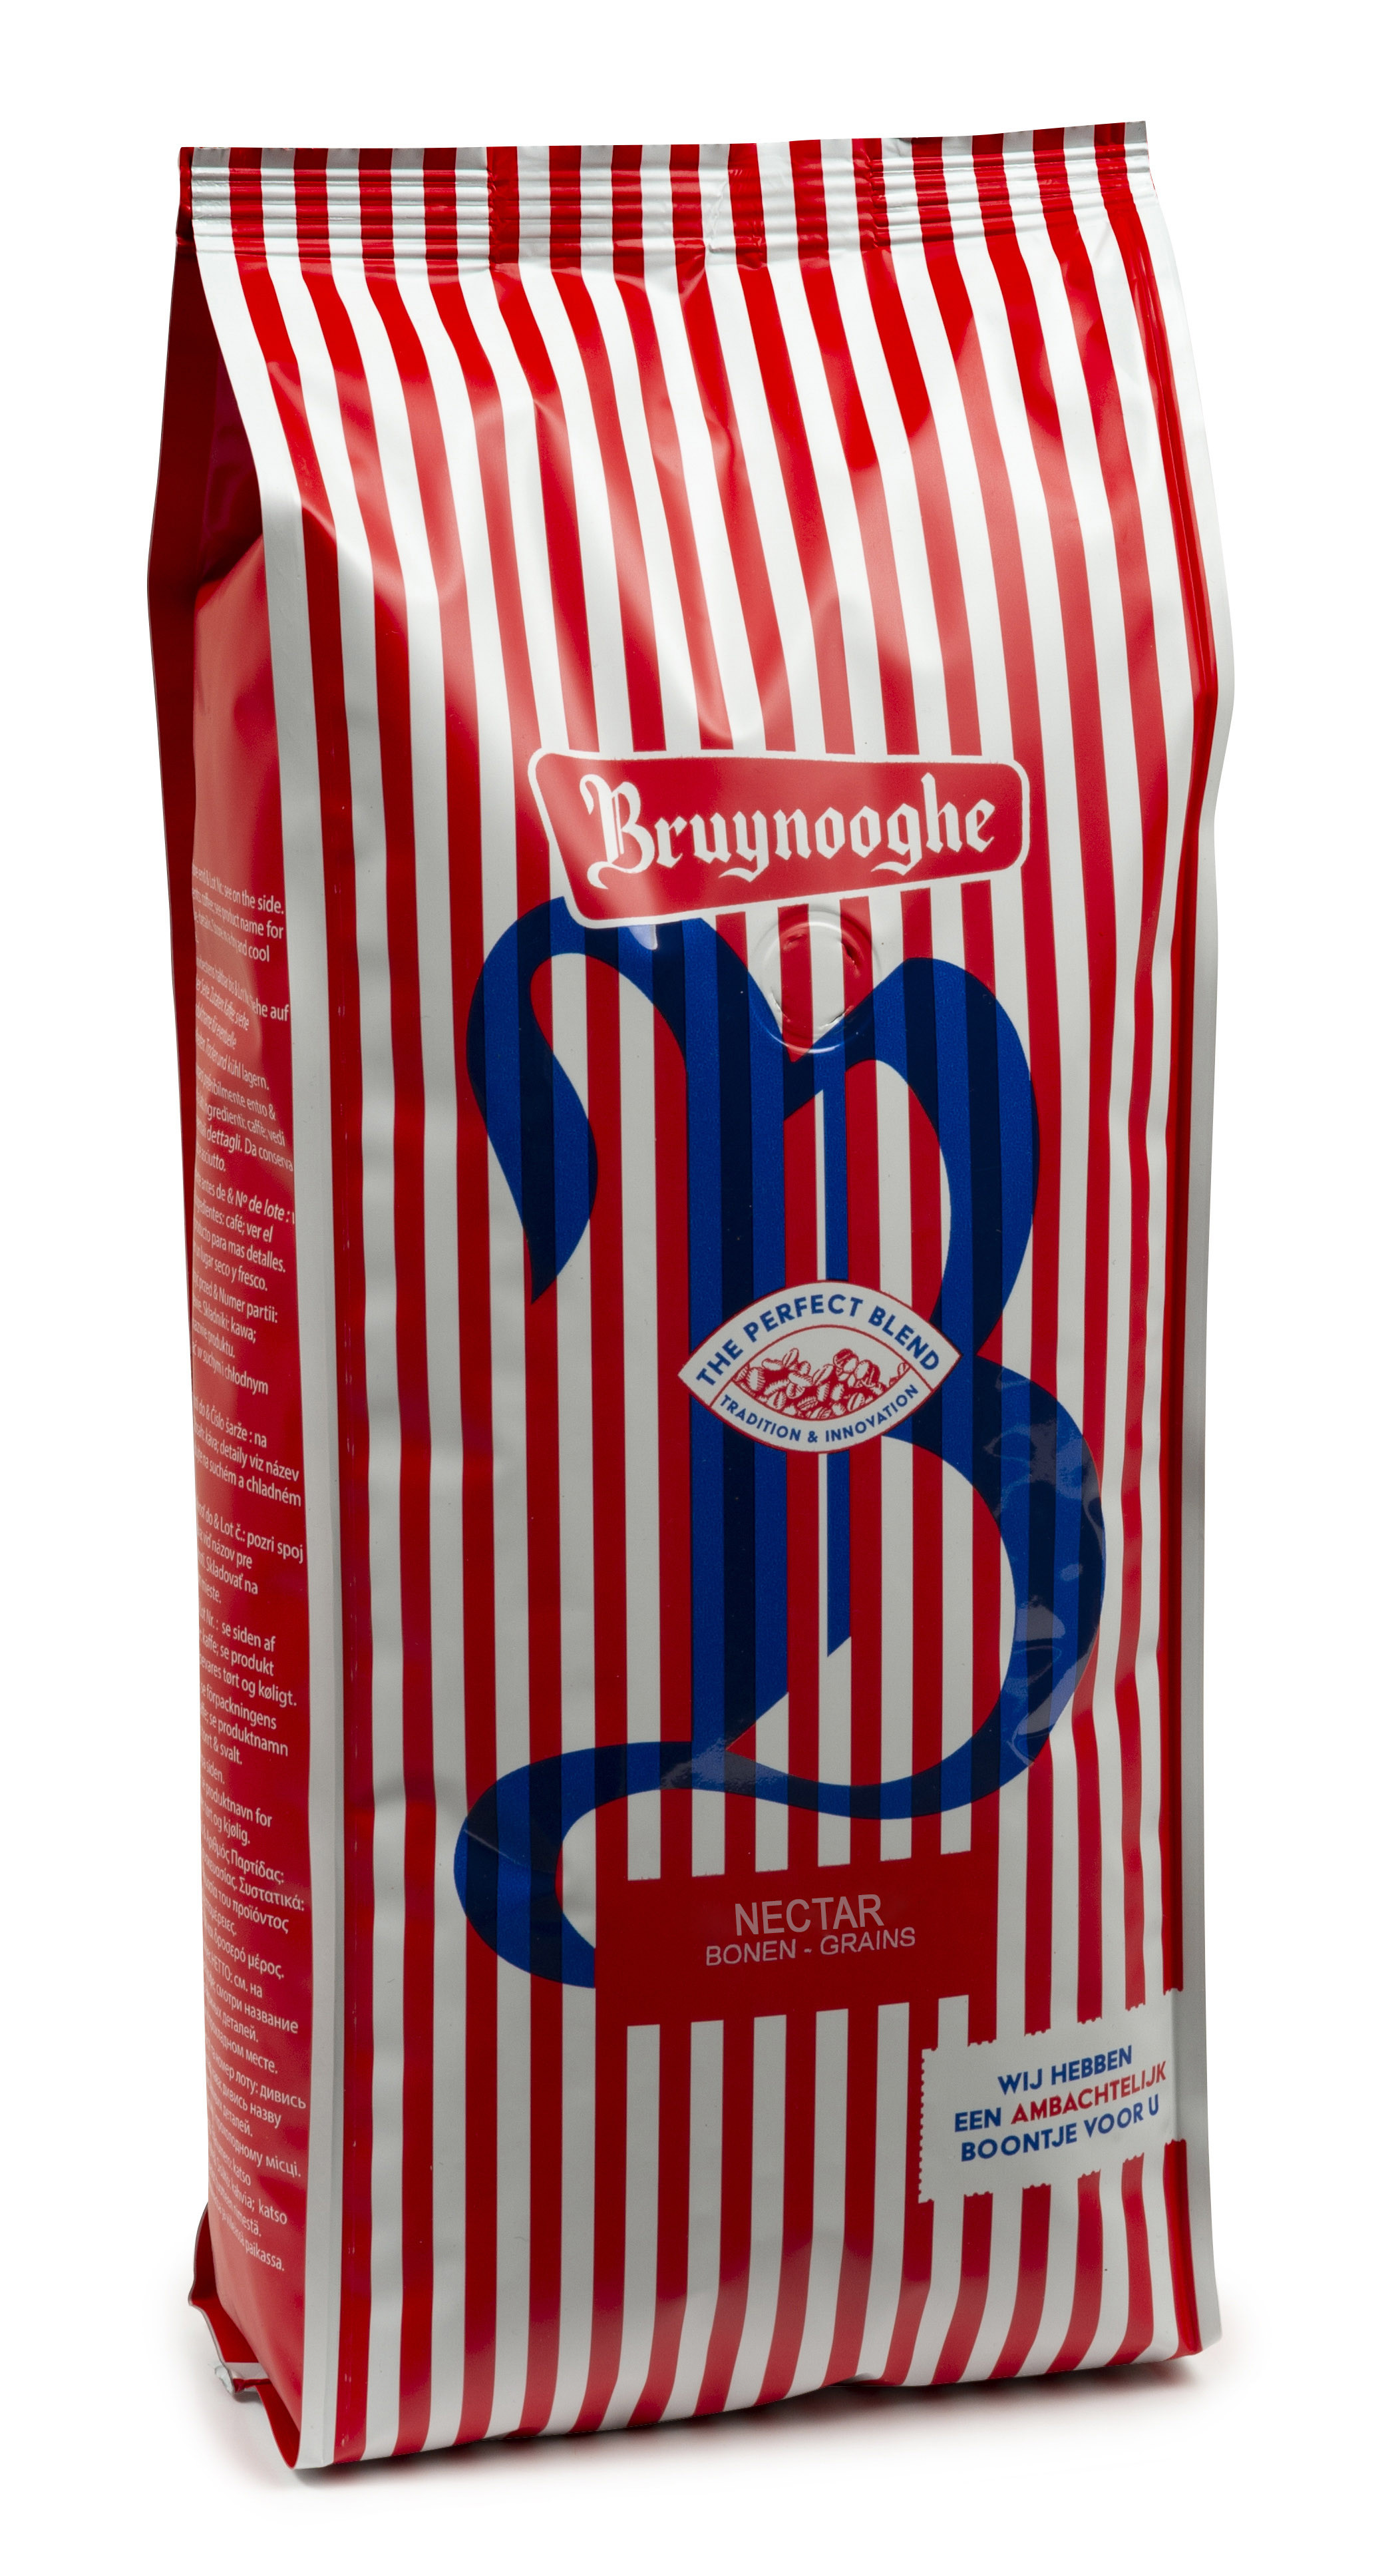 Bruynooghe Coffee Nectar beans 1kg (Koffie)